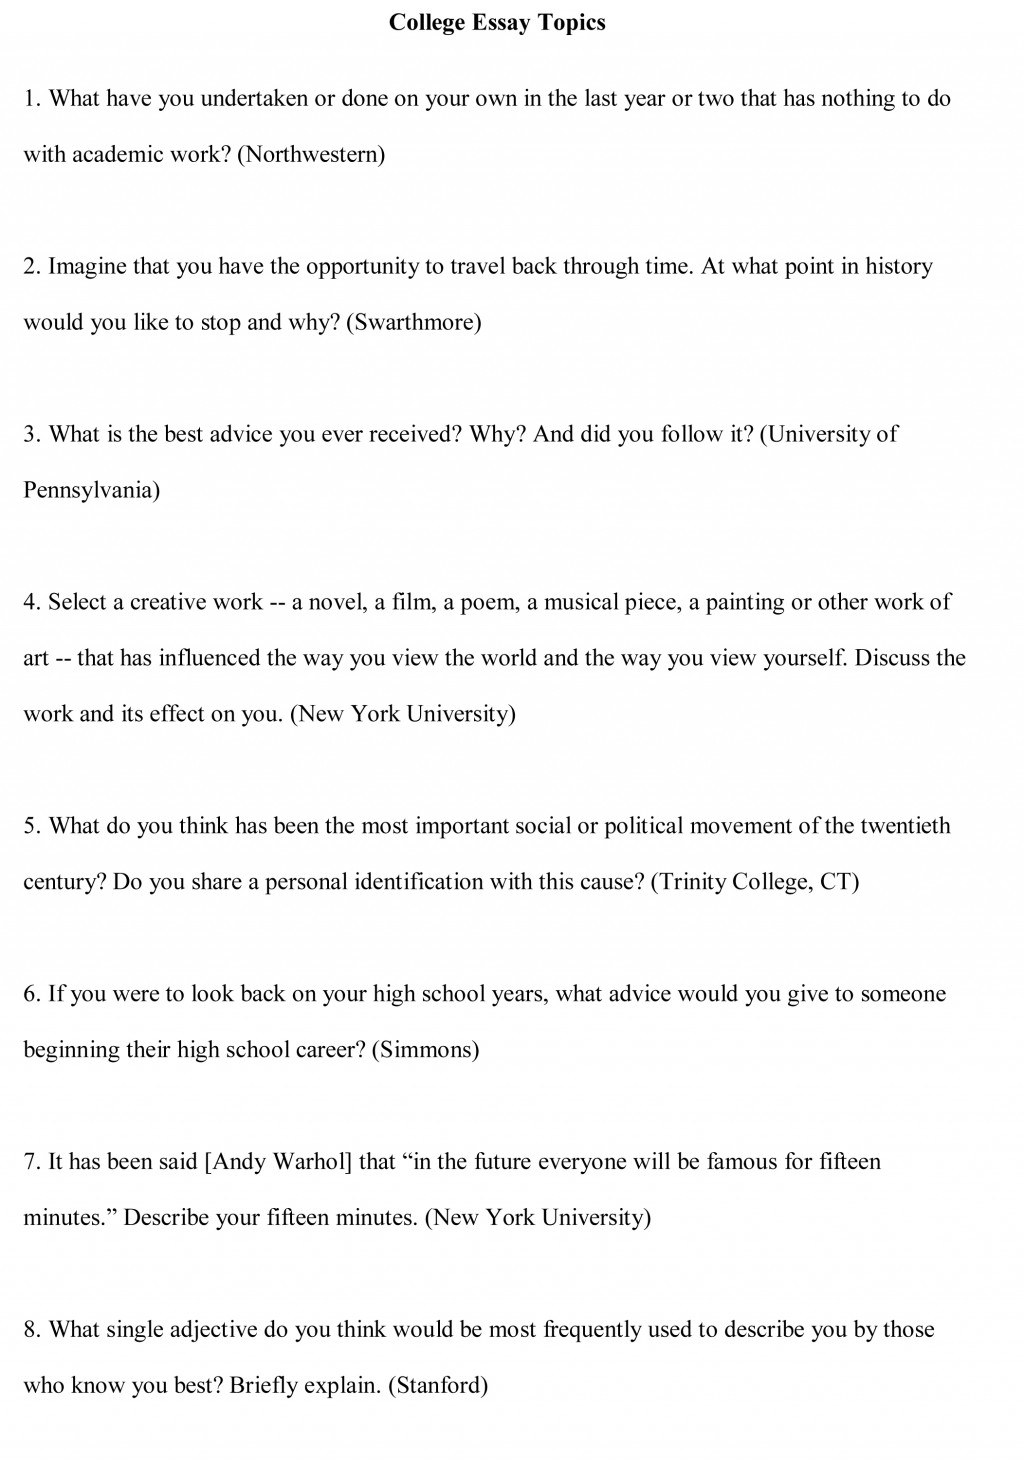 016 College Essay Topics Free Sample Example Argumentative Rare Prompts Persuasive For Students Unique Writing 6th Grade Large